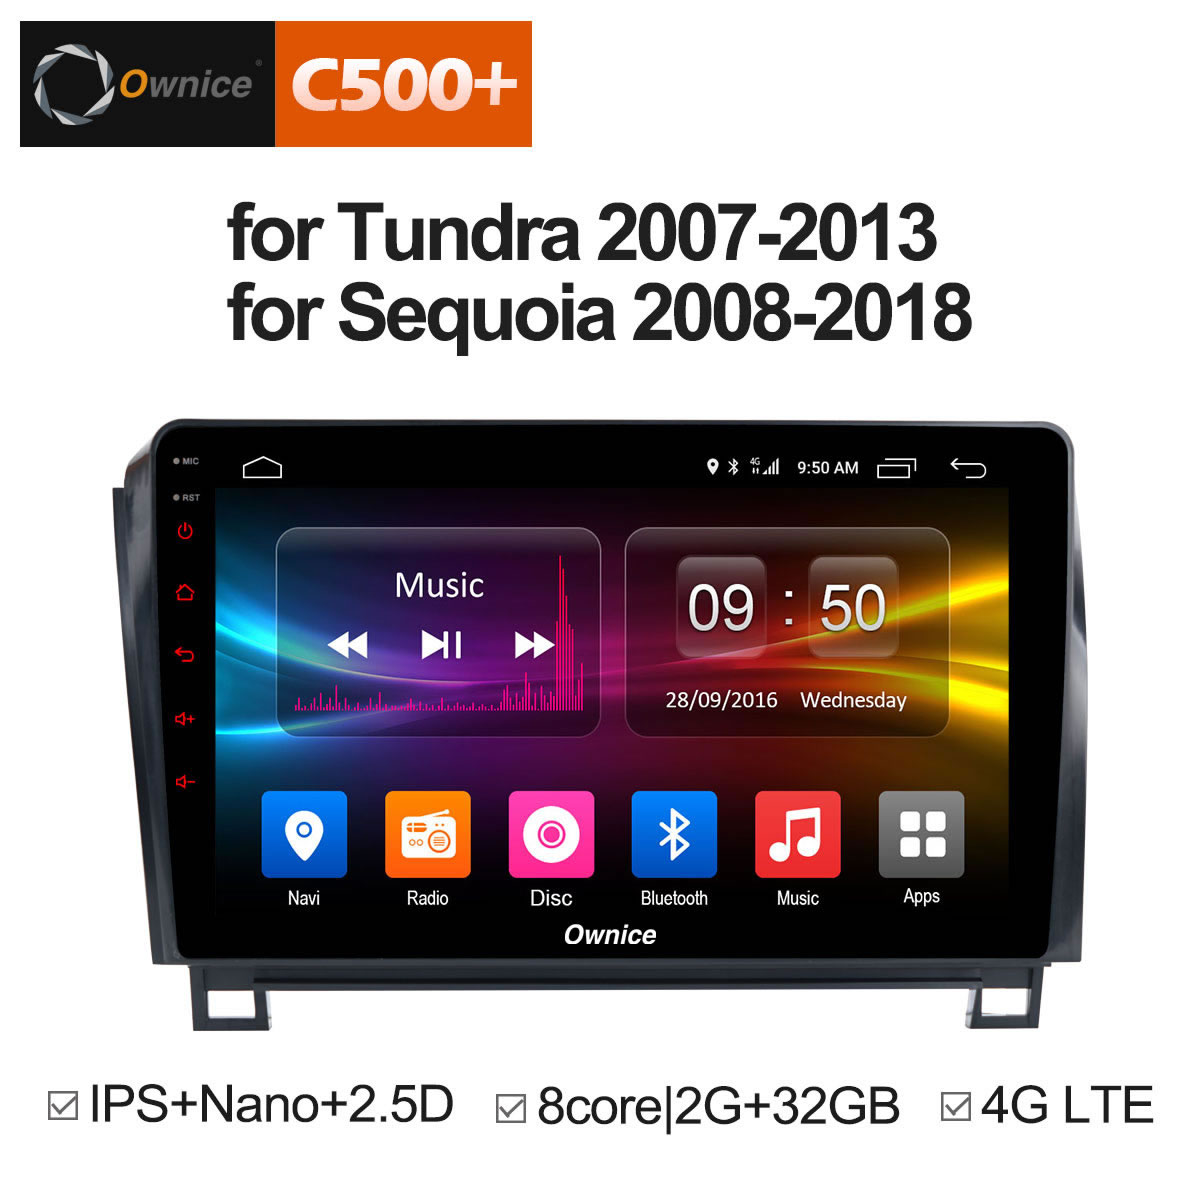 Ownice C500 + G10 Android 8.1 8 Core Auto DVD GPS Für Toyota Tundra 2007-2013 Sequoia 2008-2018 stereo Radio Audio 4g OBD DVR